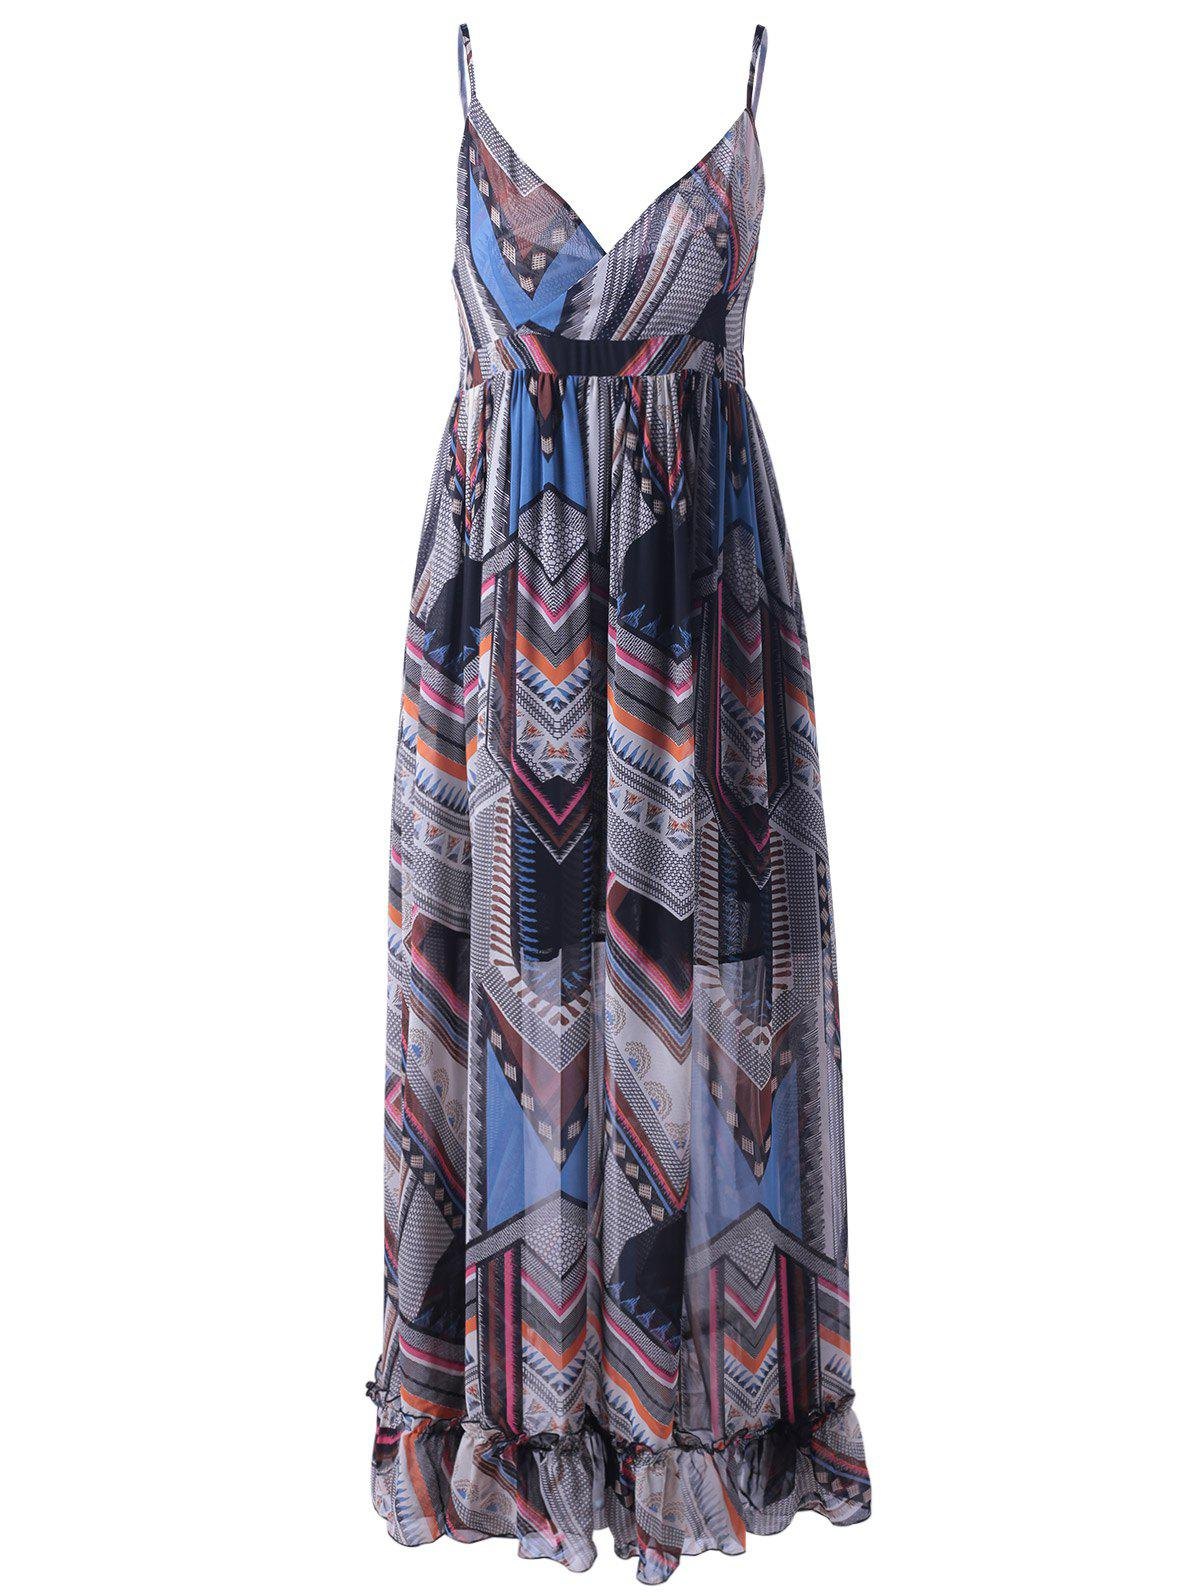 Trendy Colorful Print Sleeveless Spaghetti Strap Dress For Women - COLORMIX S